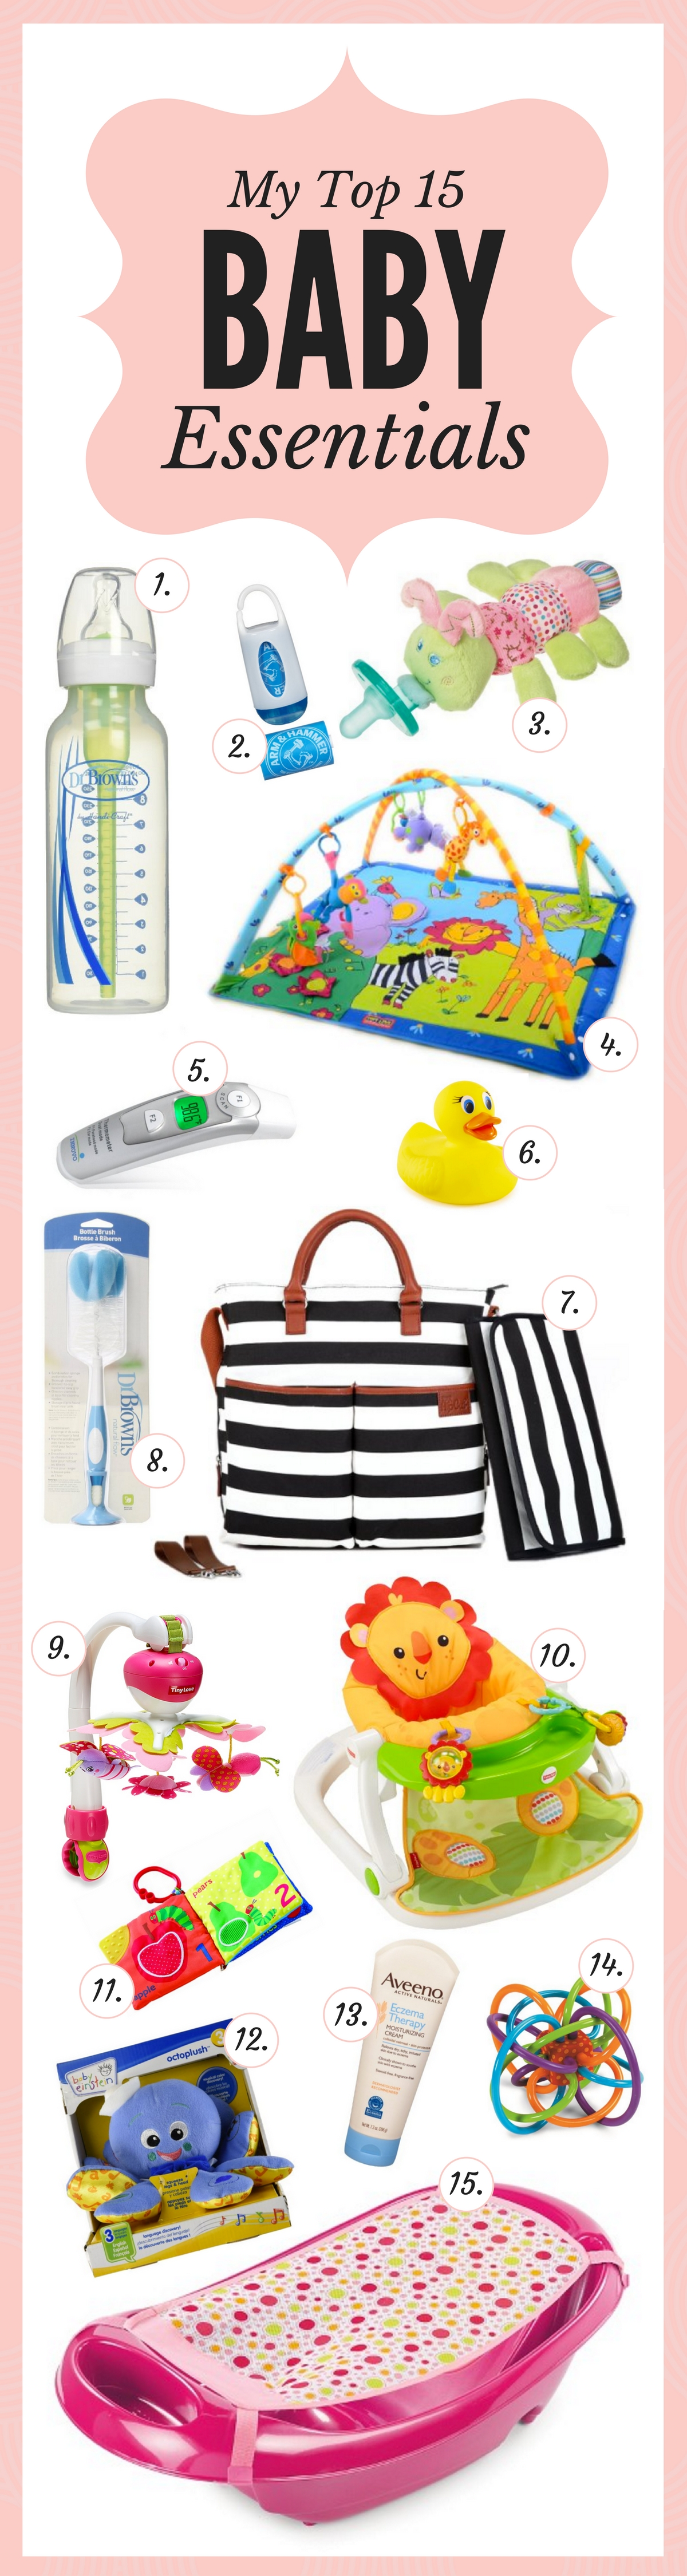 My-Top-15-Baby-Essentials